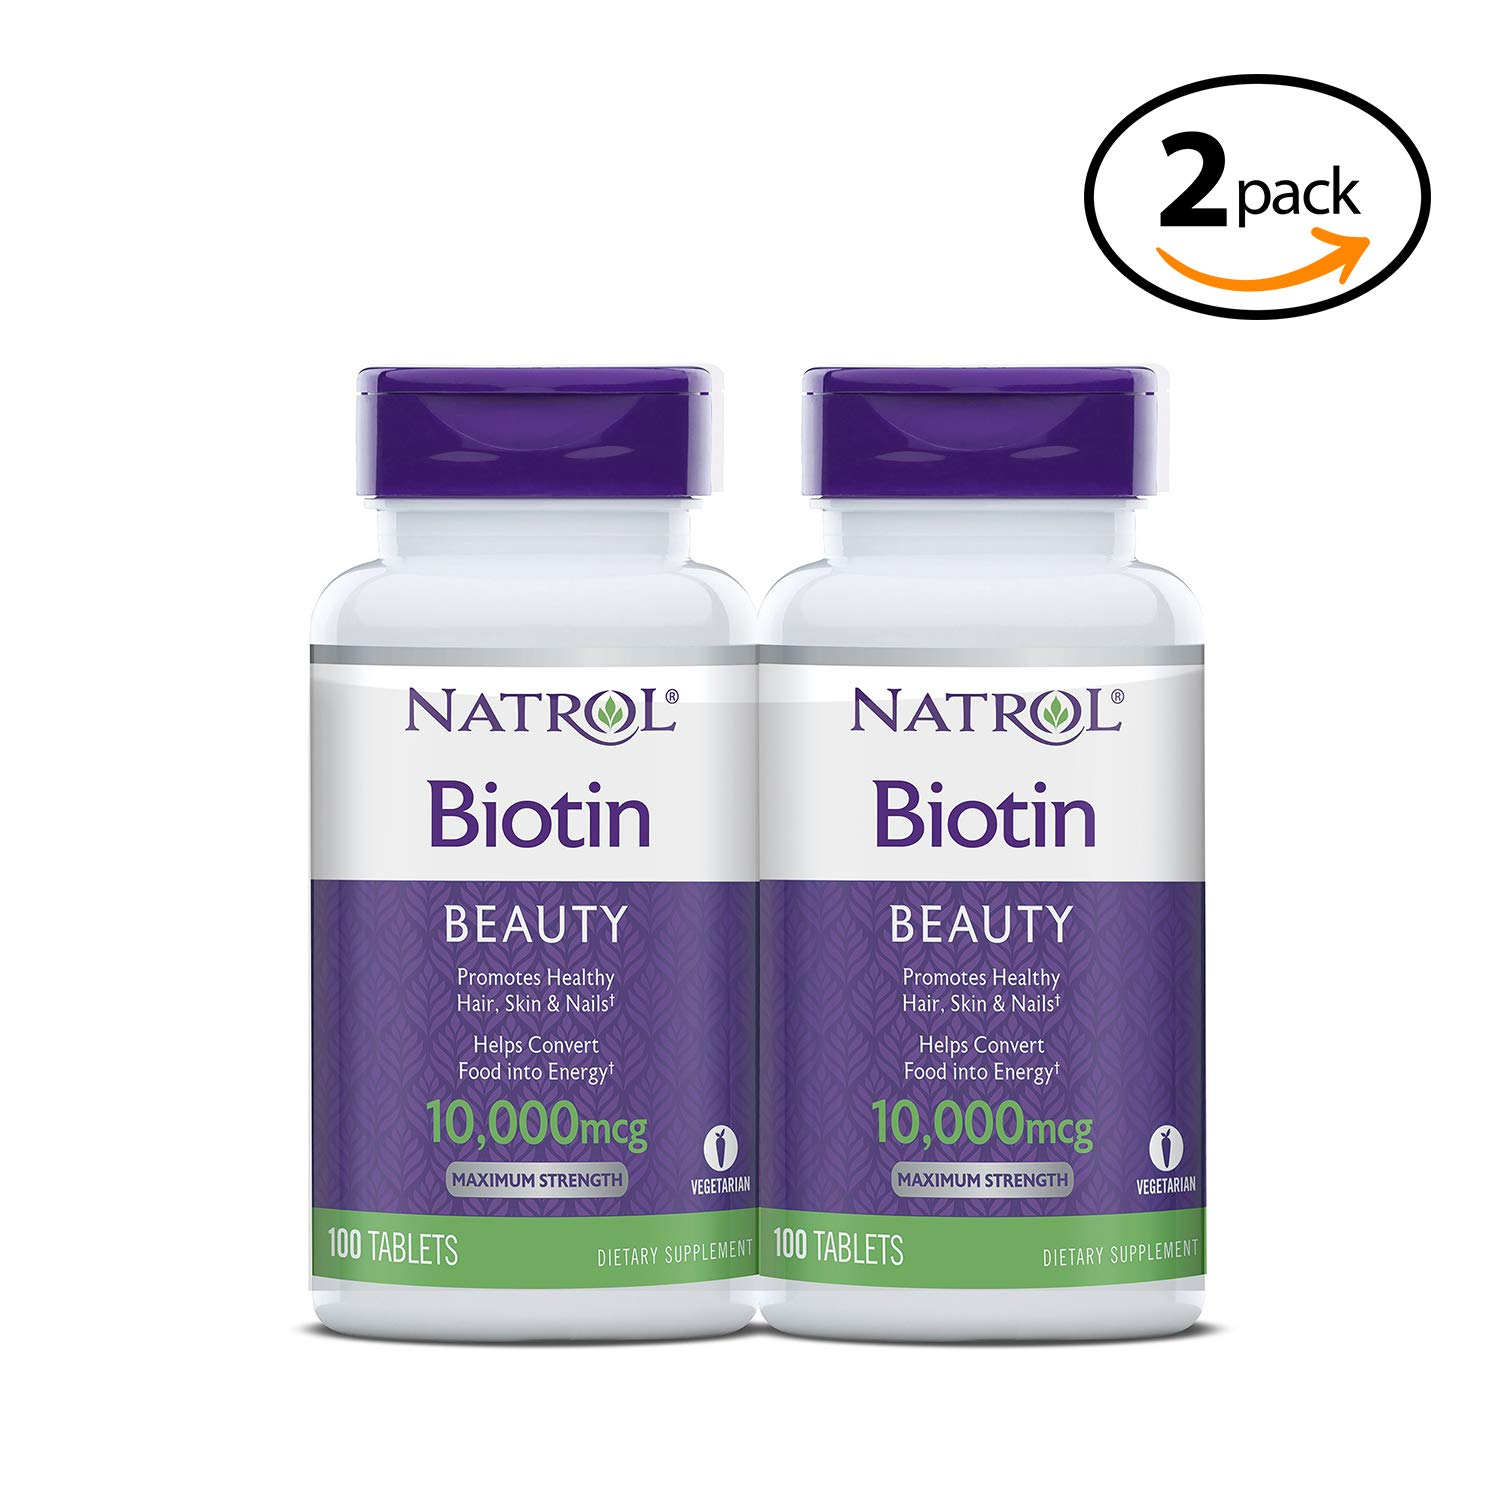 Biotin Beauty Tablets, Promotes Healthy Hair, Skin and Nails, Helps Support Energy Metabolism, Helps Convert Food Into Energy, Maximum Strength, 10,000mcg, 100 Count Pack of 2 2-Pack